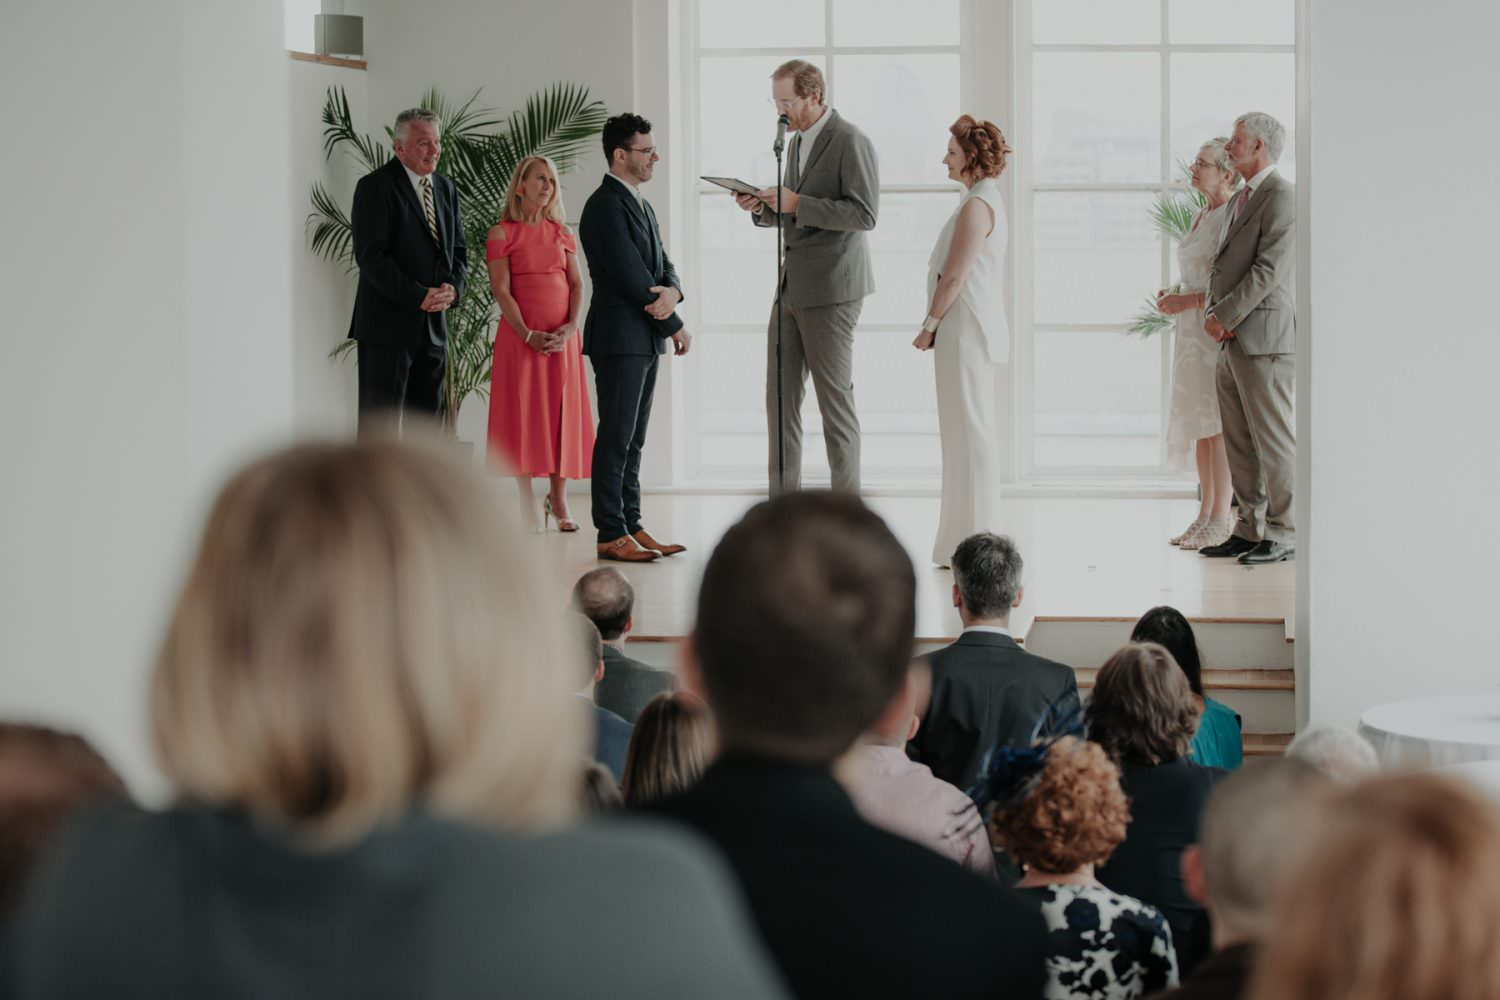 Bride and Groom looking at each other on the stage during their wedding ceremony